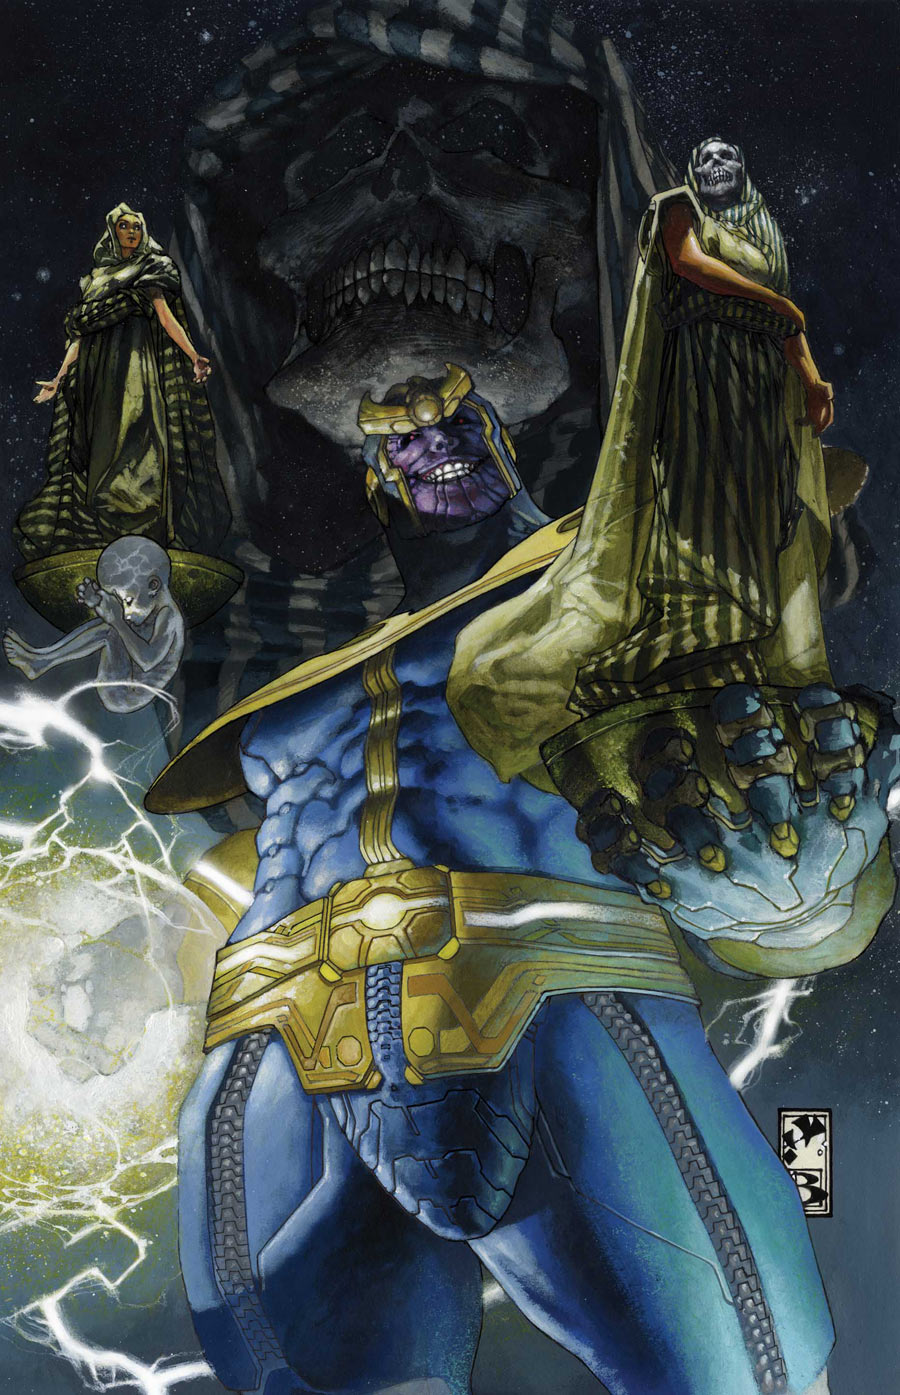 Thanos Rising Vol 1 3 - Marvel Comics Database